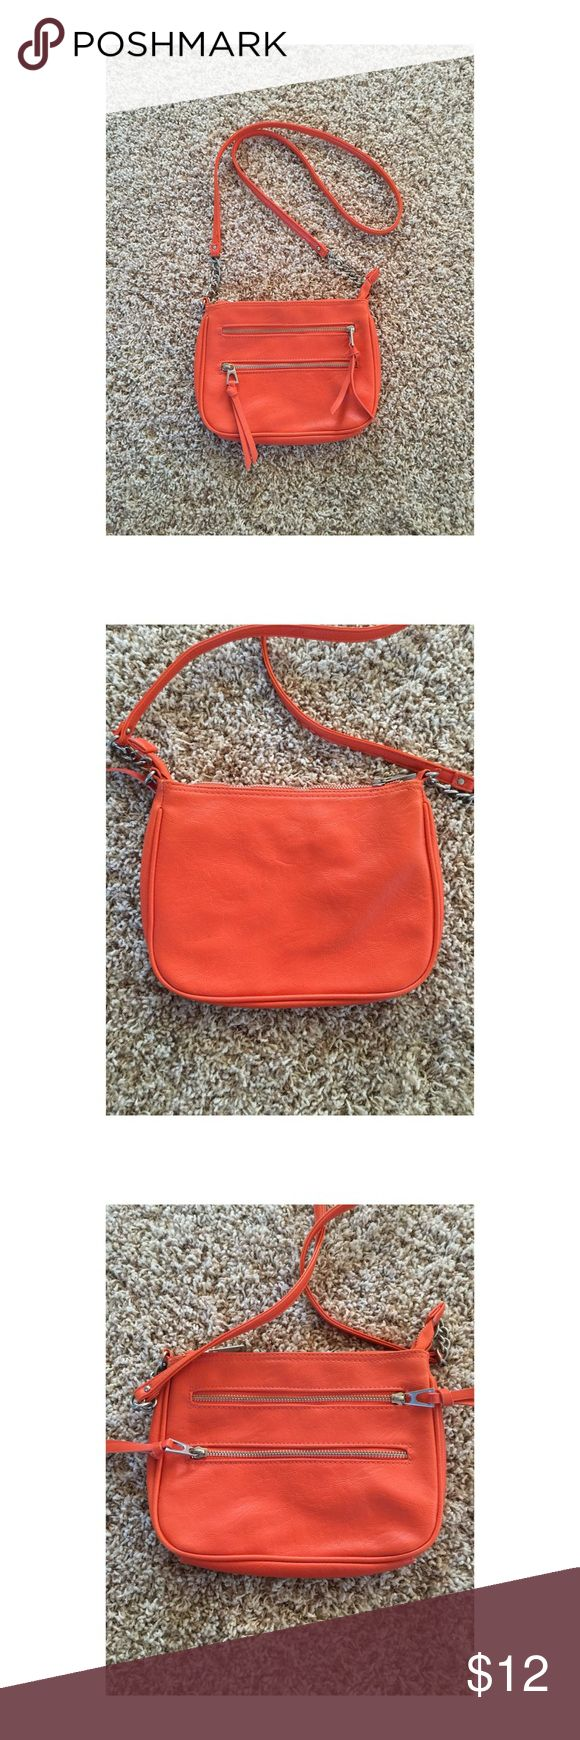 orange shoulder bag Silver chain accents and zippers. Three compartments. Two of them are in the outside front and the main third compartment has a small zippered pocket within. Not sure of the brand because it is unlabeled. Excellent condition! Bags